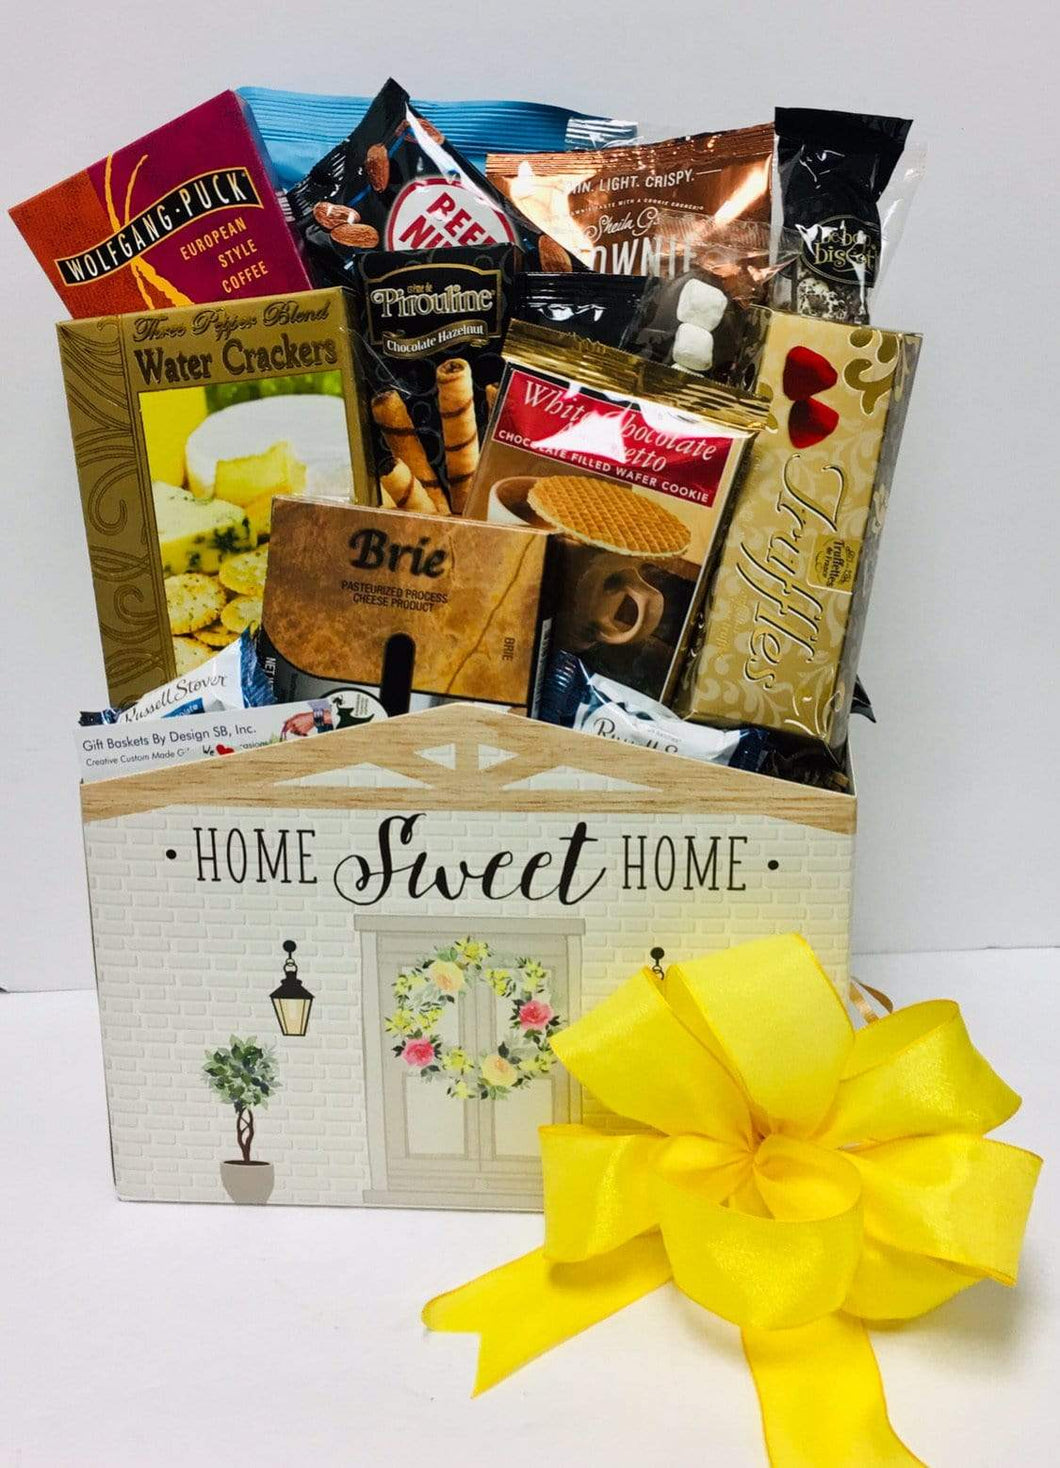 Home Sweet Home*New - Gift Baskets By Design SB, Inc.